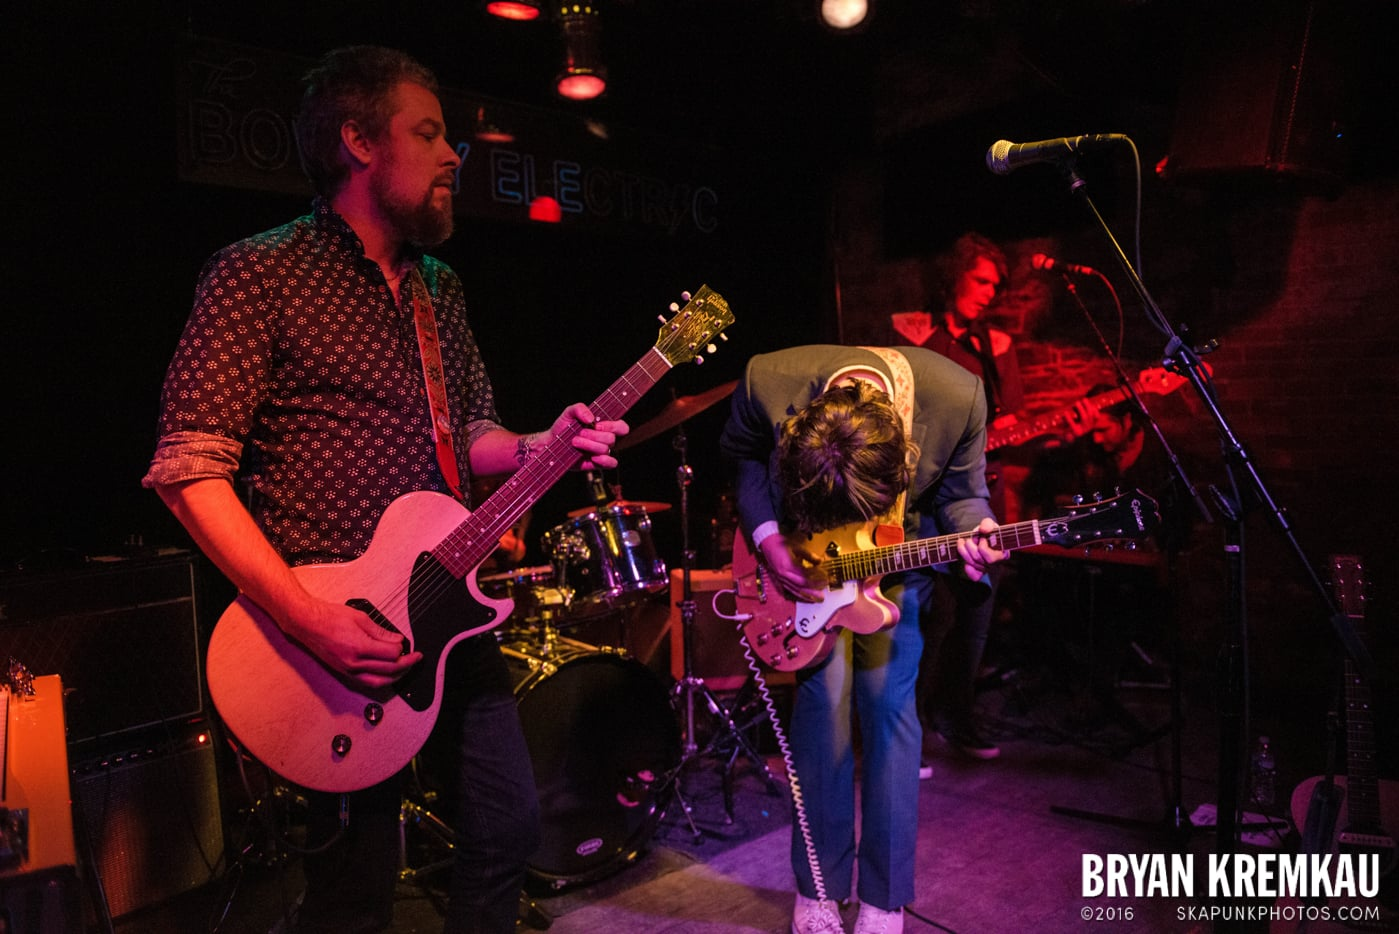 Trapper Schoepp & The Shades @ Bowery Electric, NYC - 11.20.14 (12)